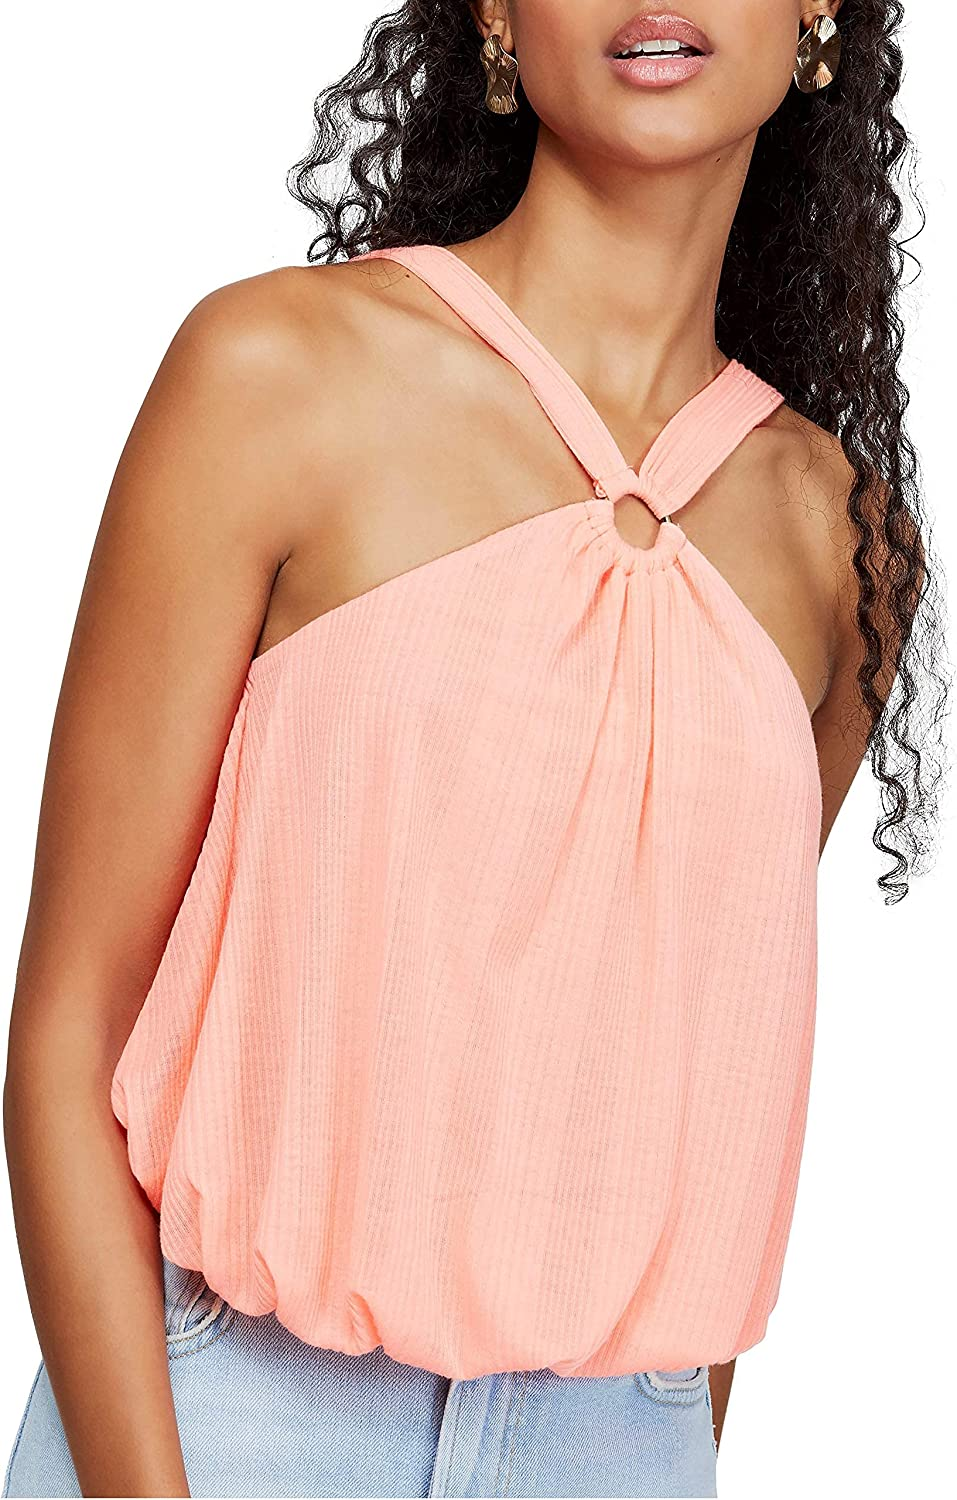 Free People | Just A Fling Halter Tank | Coral Electric | XS ...